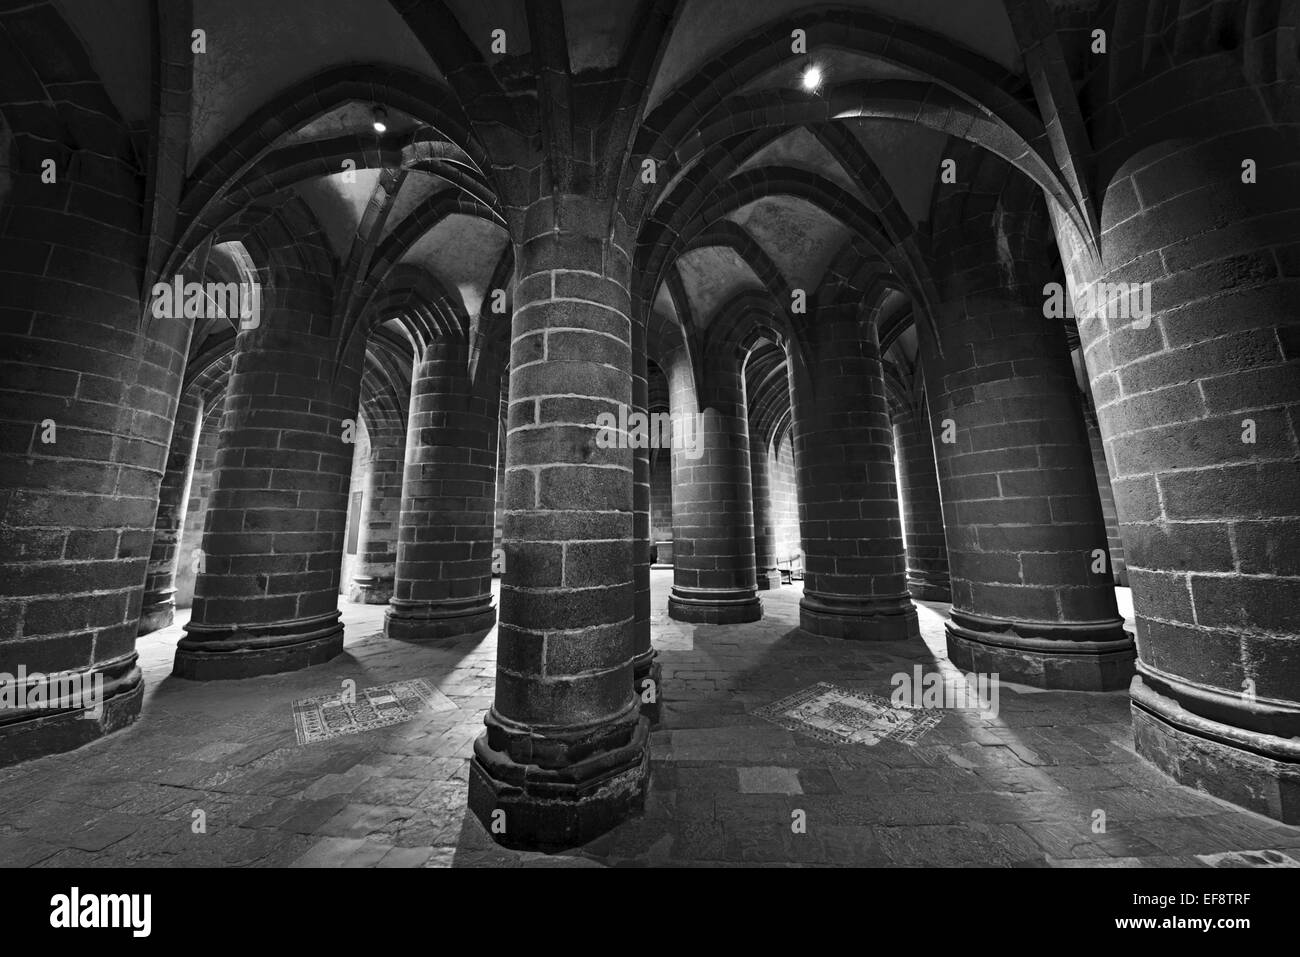 France, Normandy: Detailed black and white view of the  Great Pillar Crypt of the Abbey St. Pierre in Le Mont St. - Stock Image